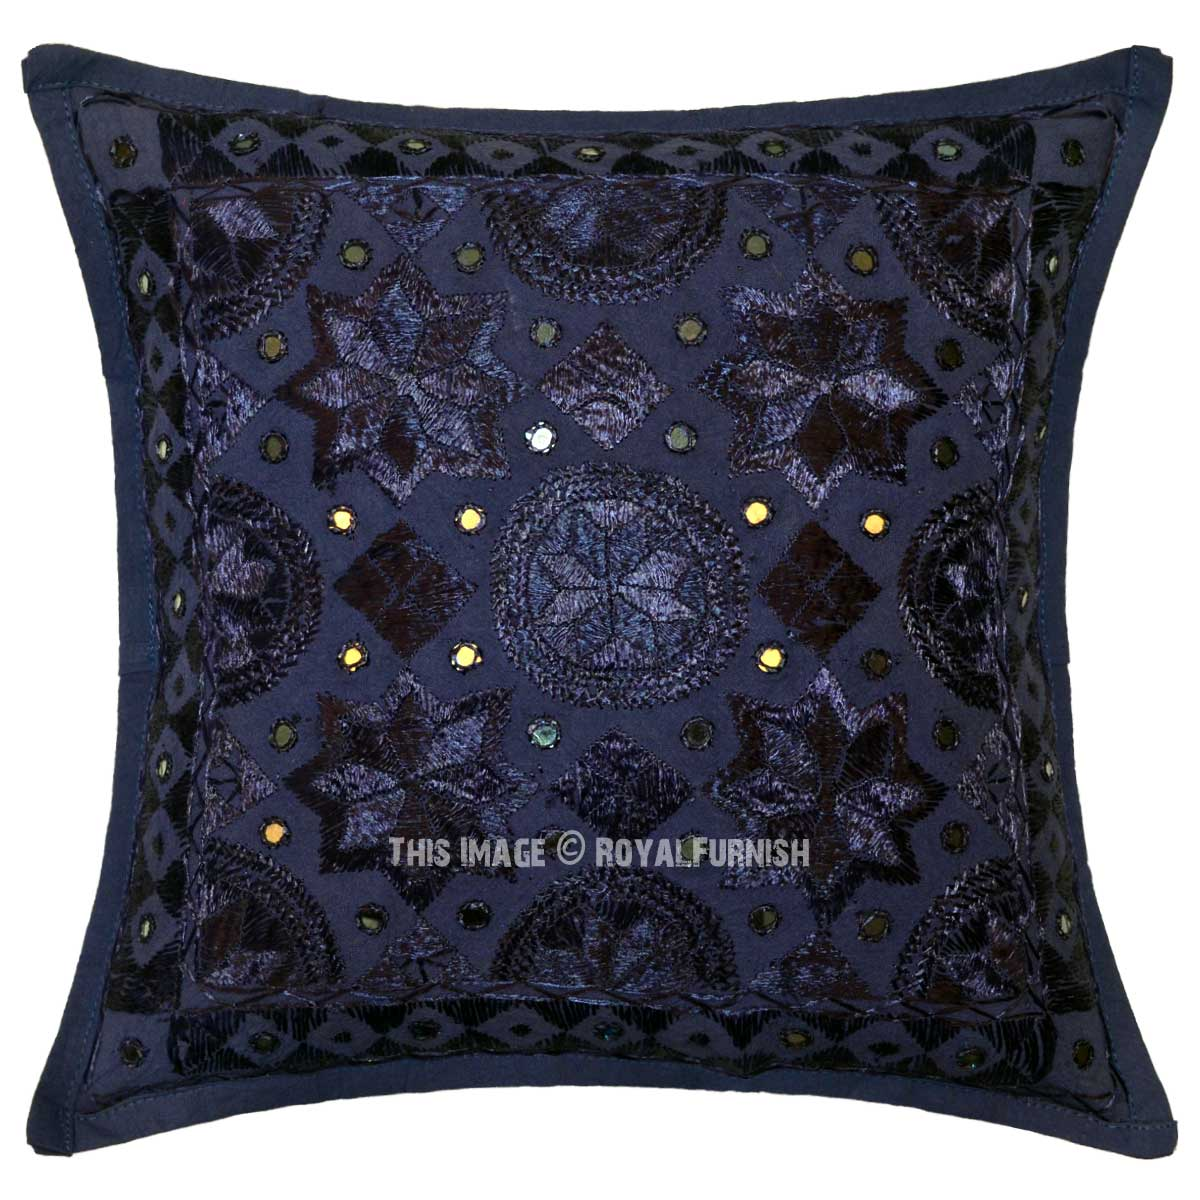 Blue Decorative Star Mirrored Unique Handmade Throw Pillow Case 16X16 - RoyalFurnish.com